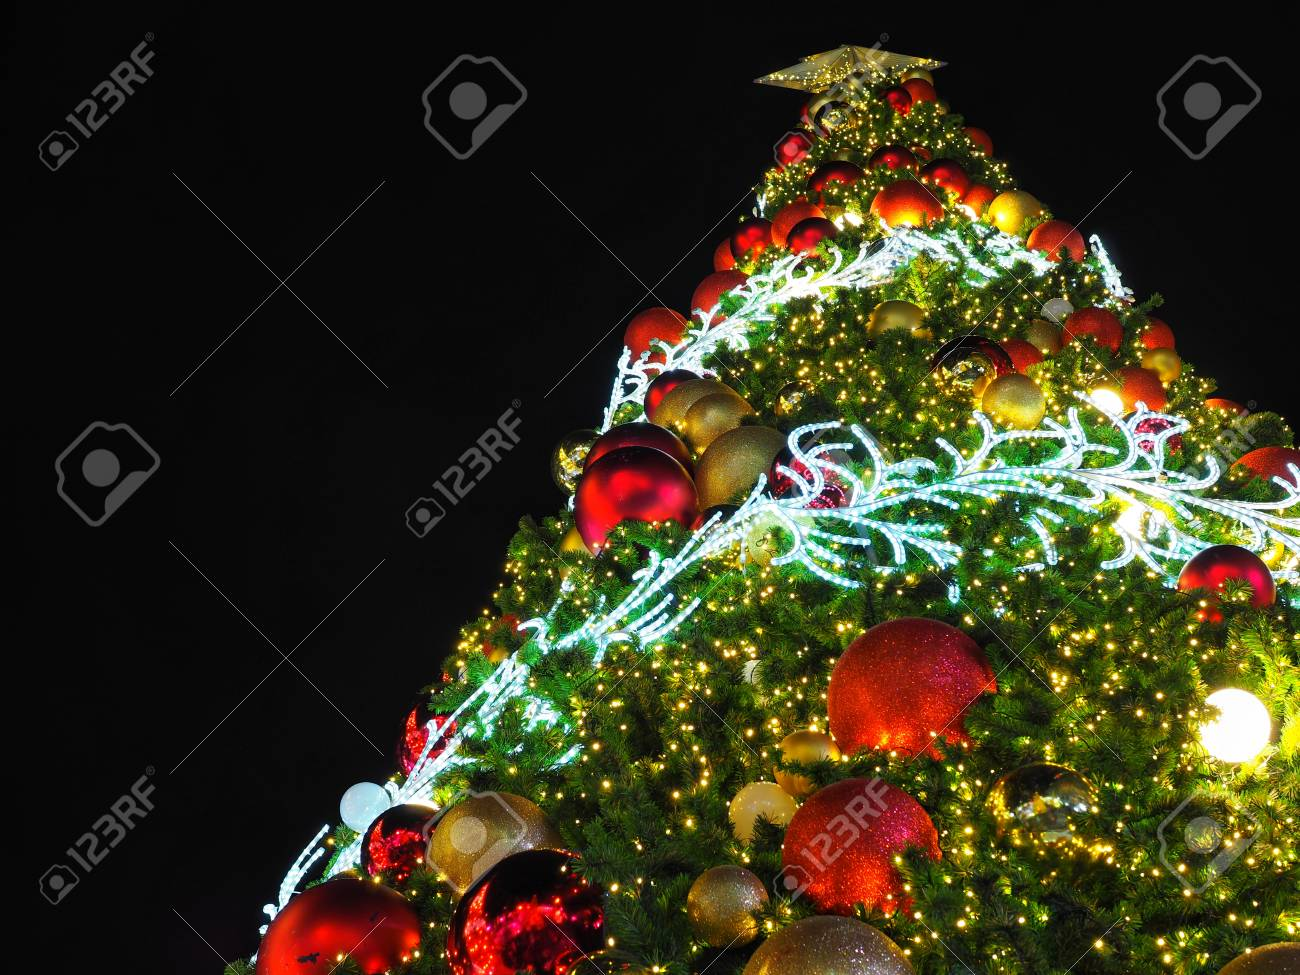 Big Christmas Tree Lighting From Low Angle View At Night In ...